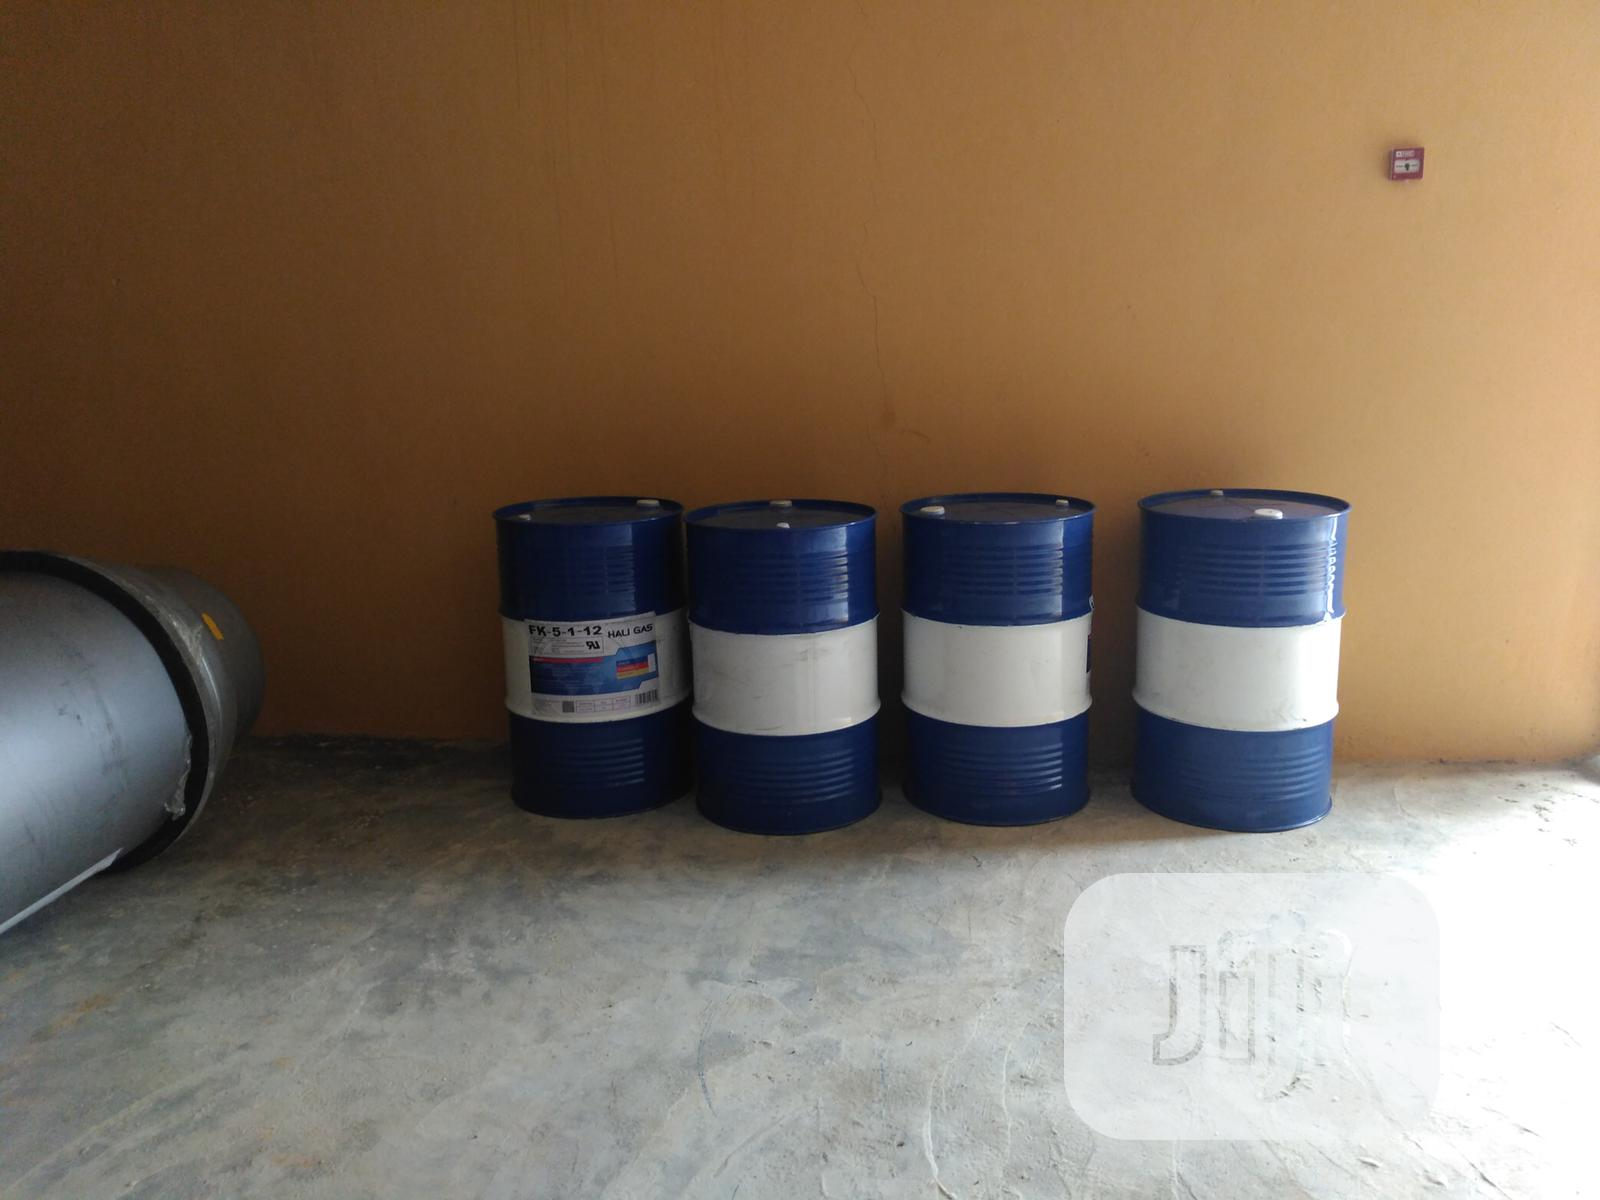 FM200 Gas Refilling Services | Safetywear & Equipment for sale in Ikeja, Lagos State, Nigeria